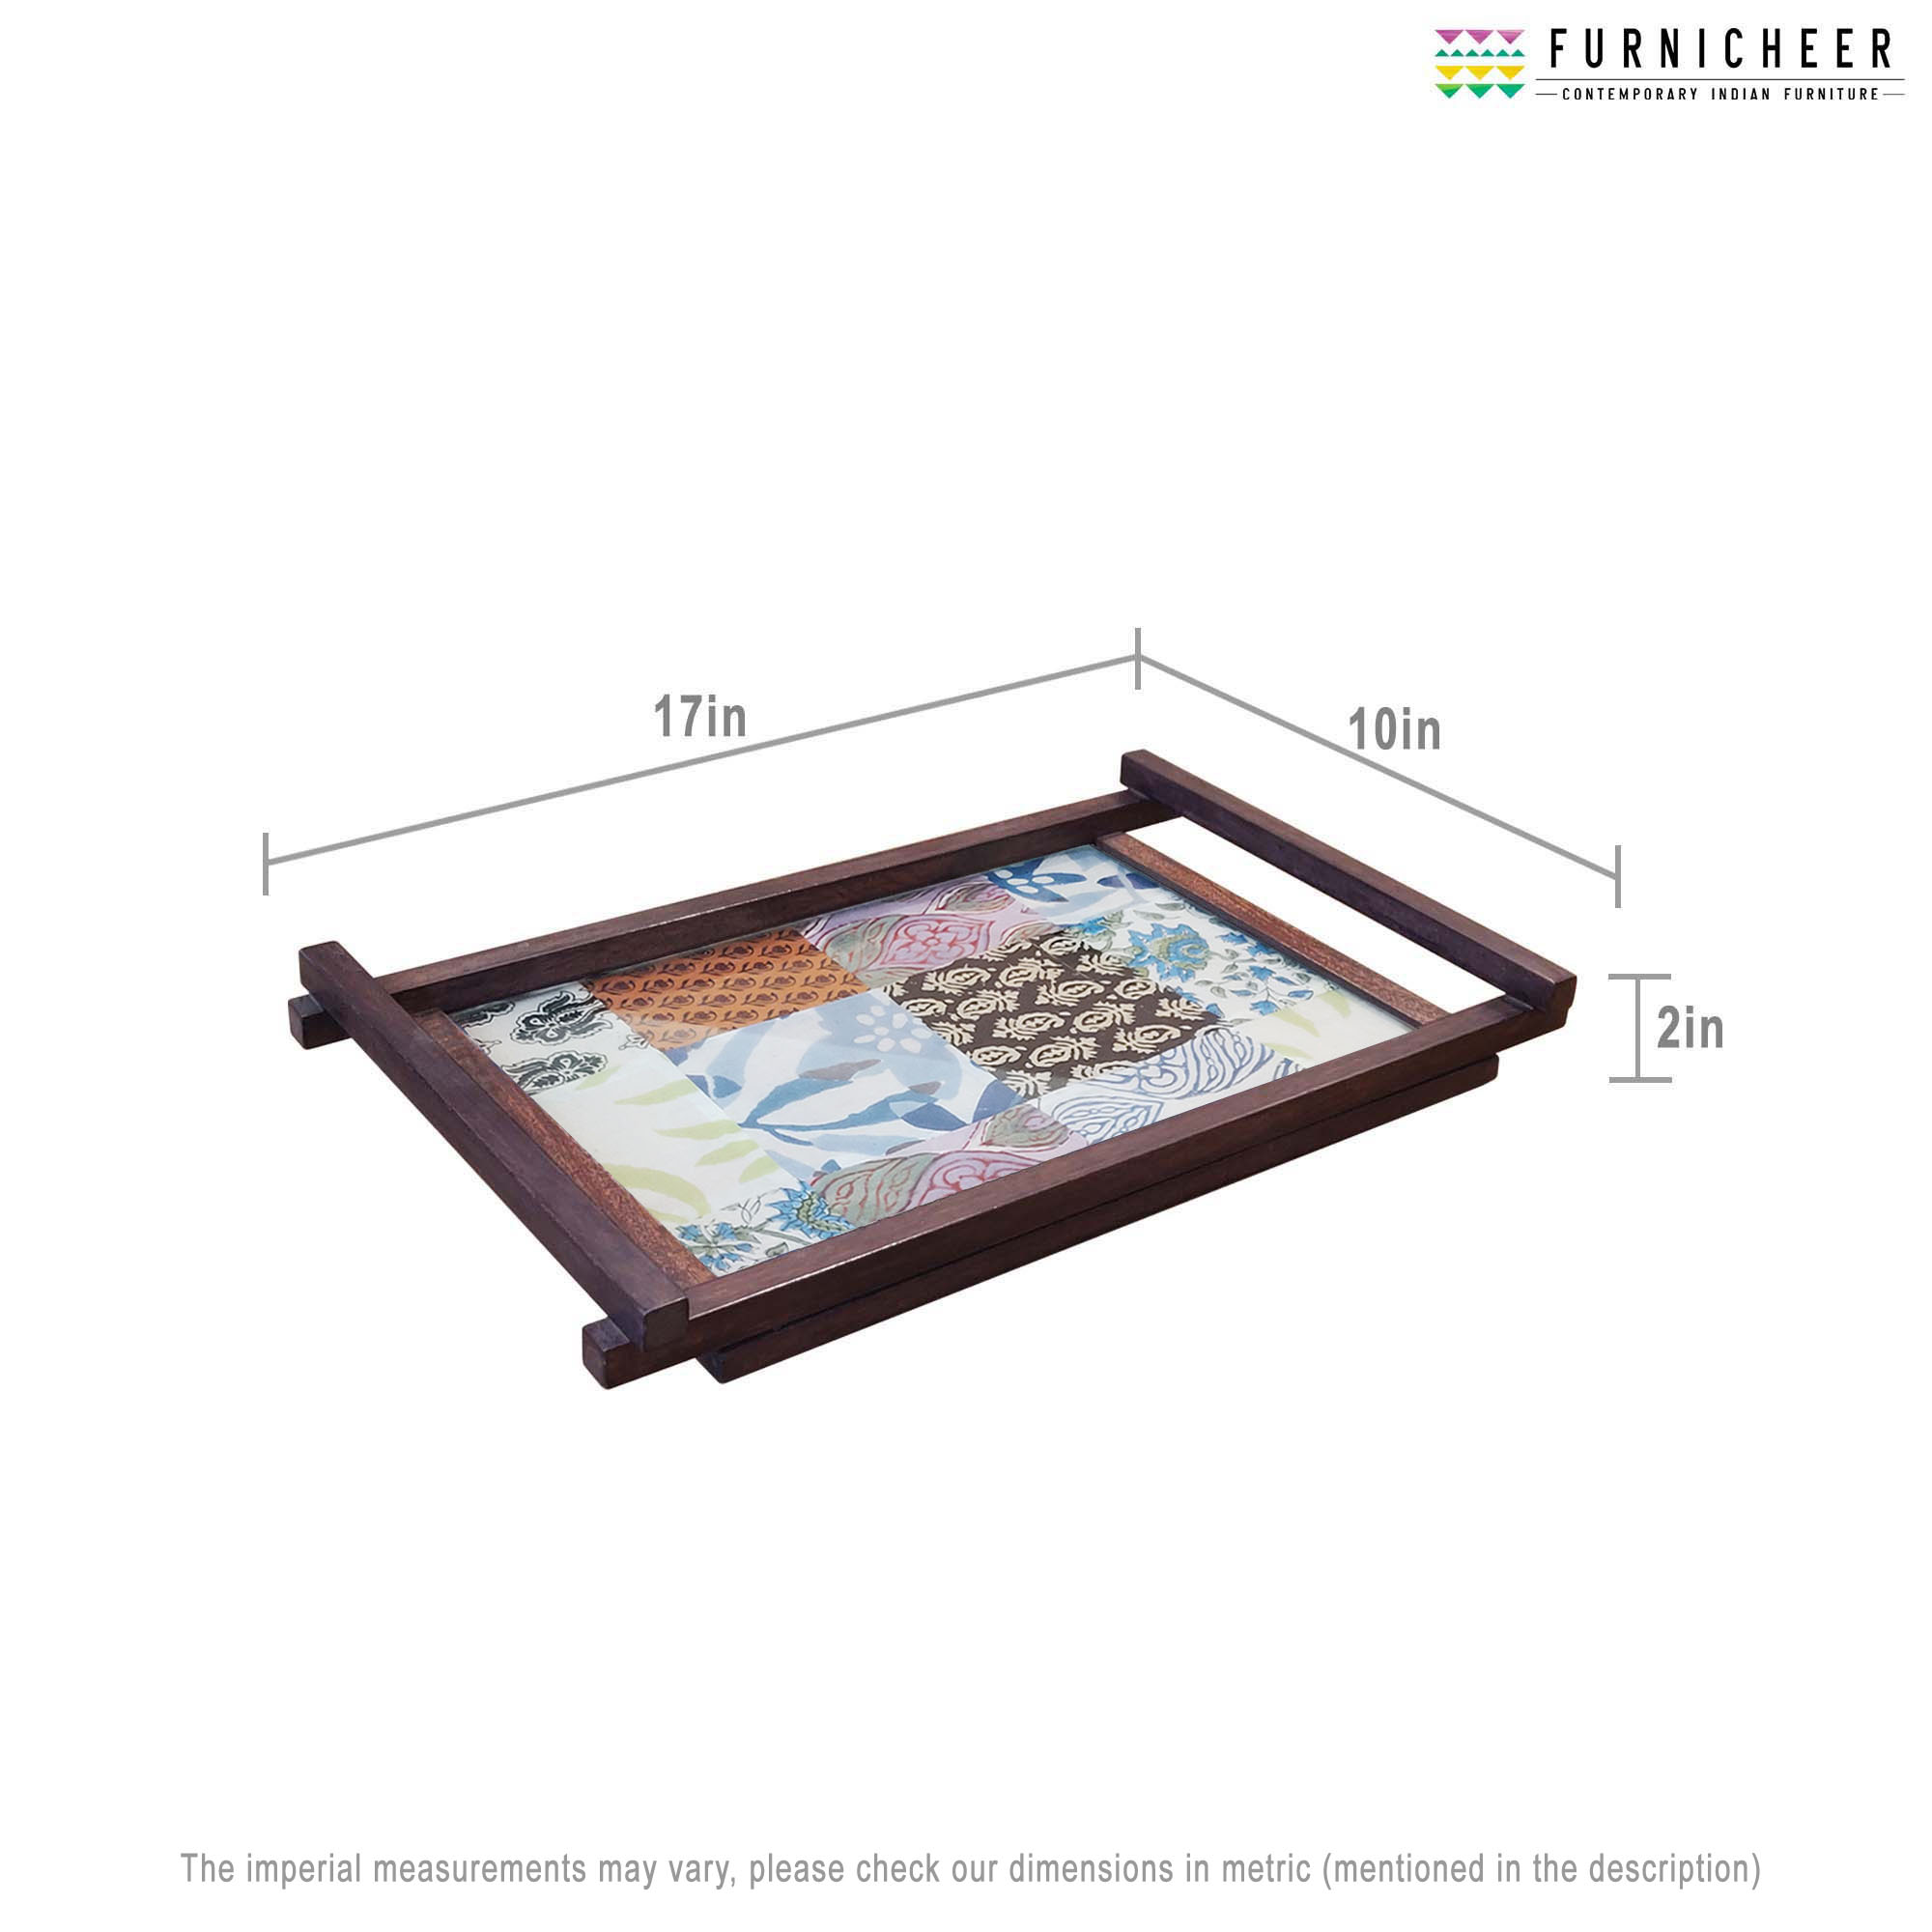 SERVING TRAY 17 X 10